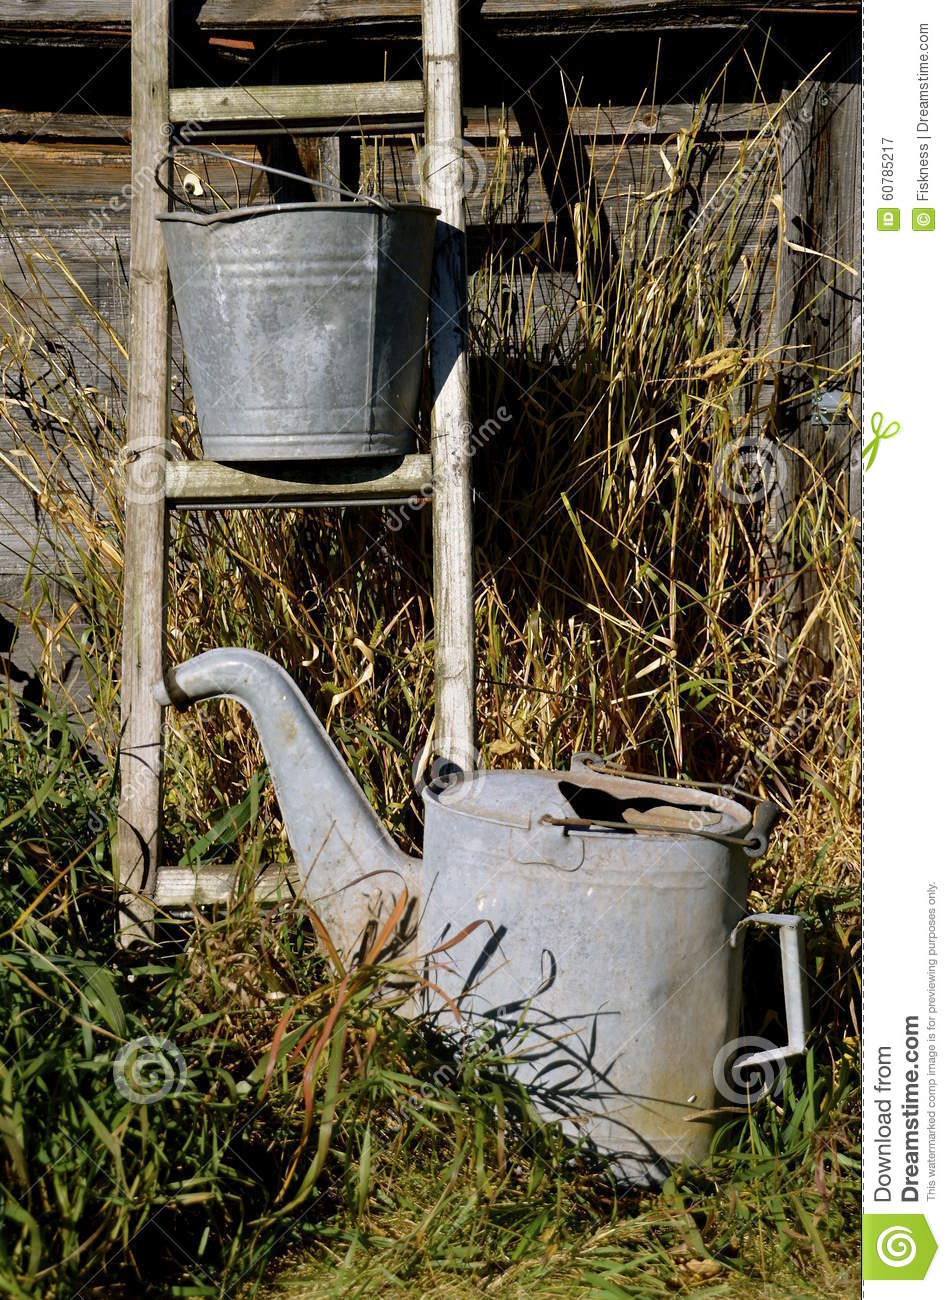 Ladder Water Sprinkler And A Pail Stock Image Image Of Master